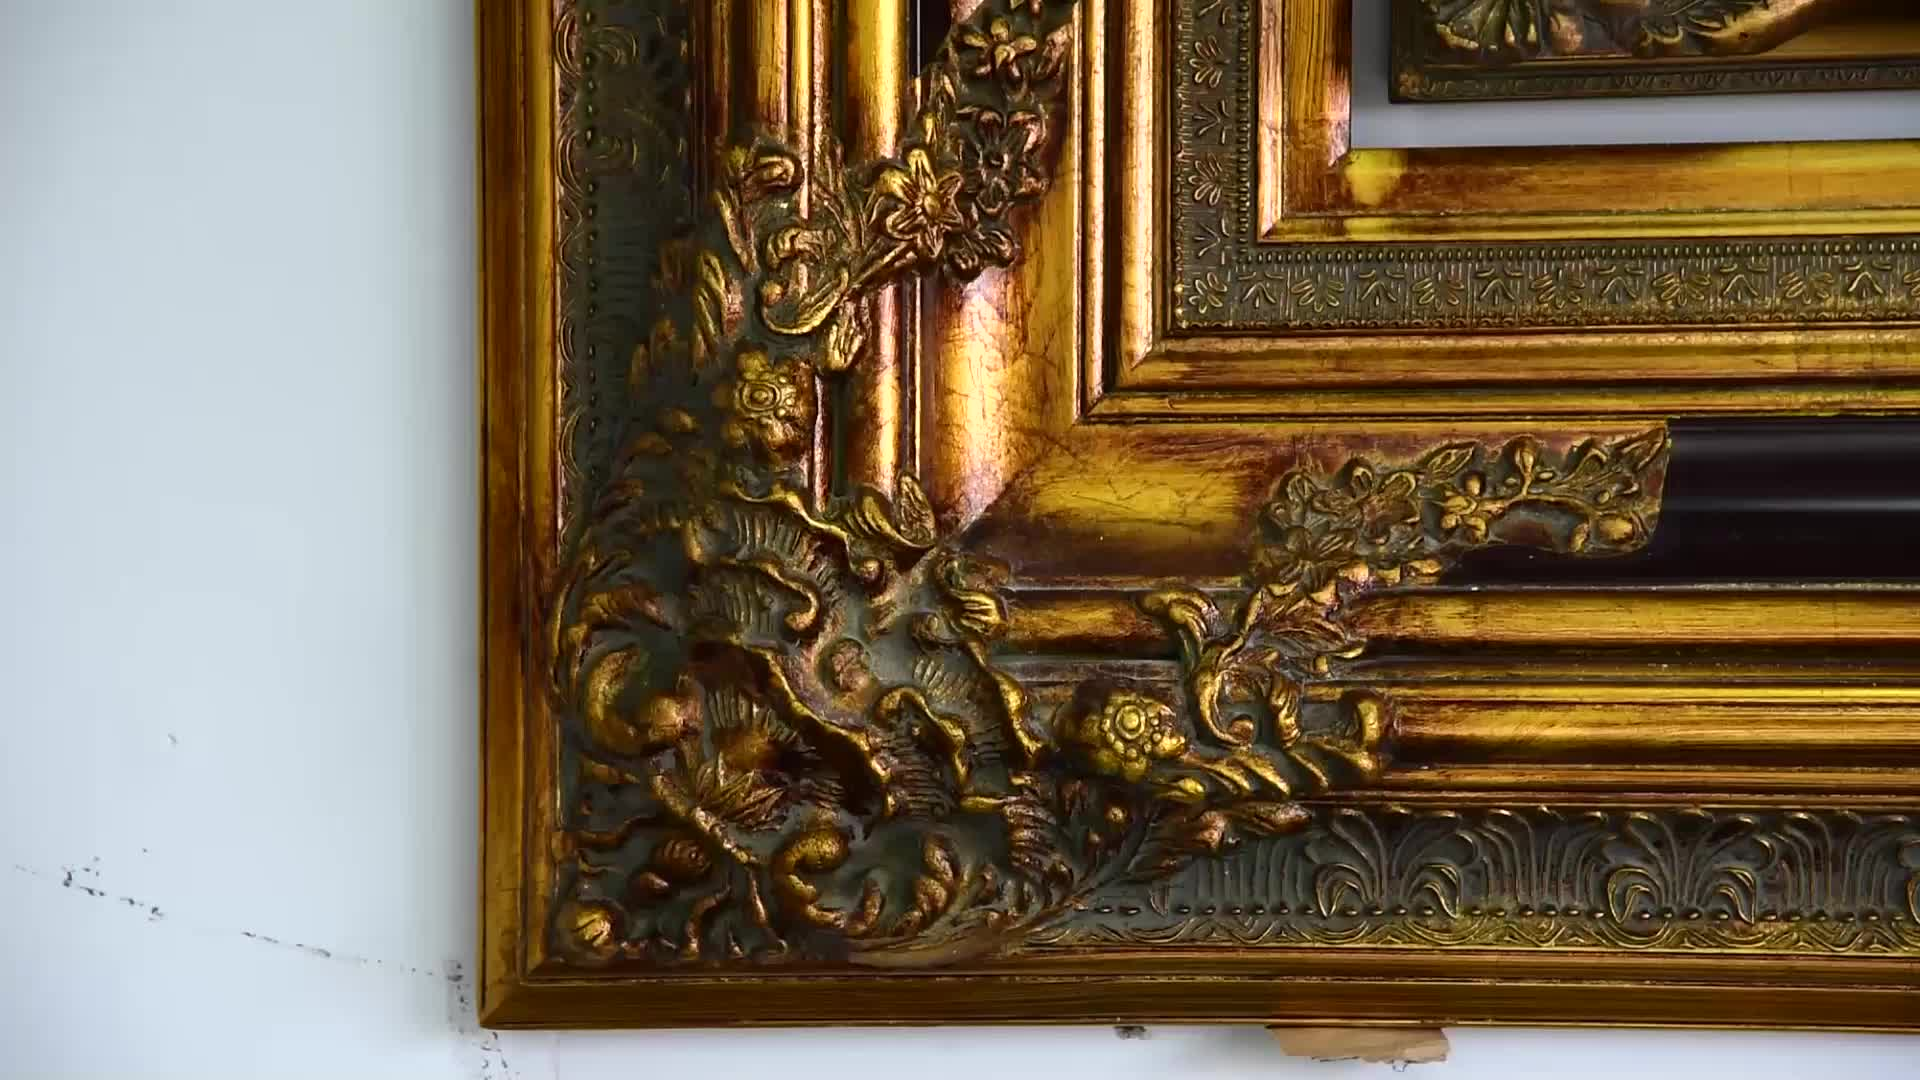 Wall Decorative ornate Wooden Vintage Baroque Vanity framed sliver wall Mirror